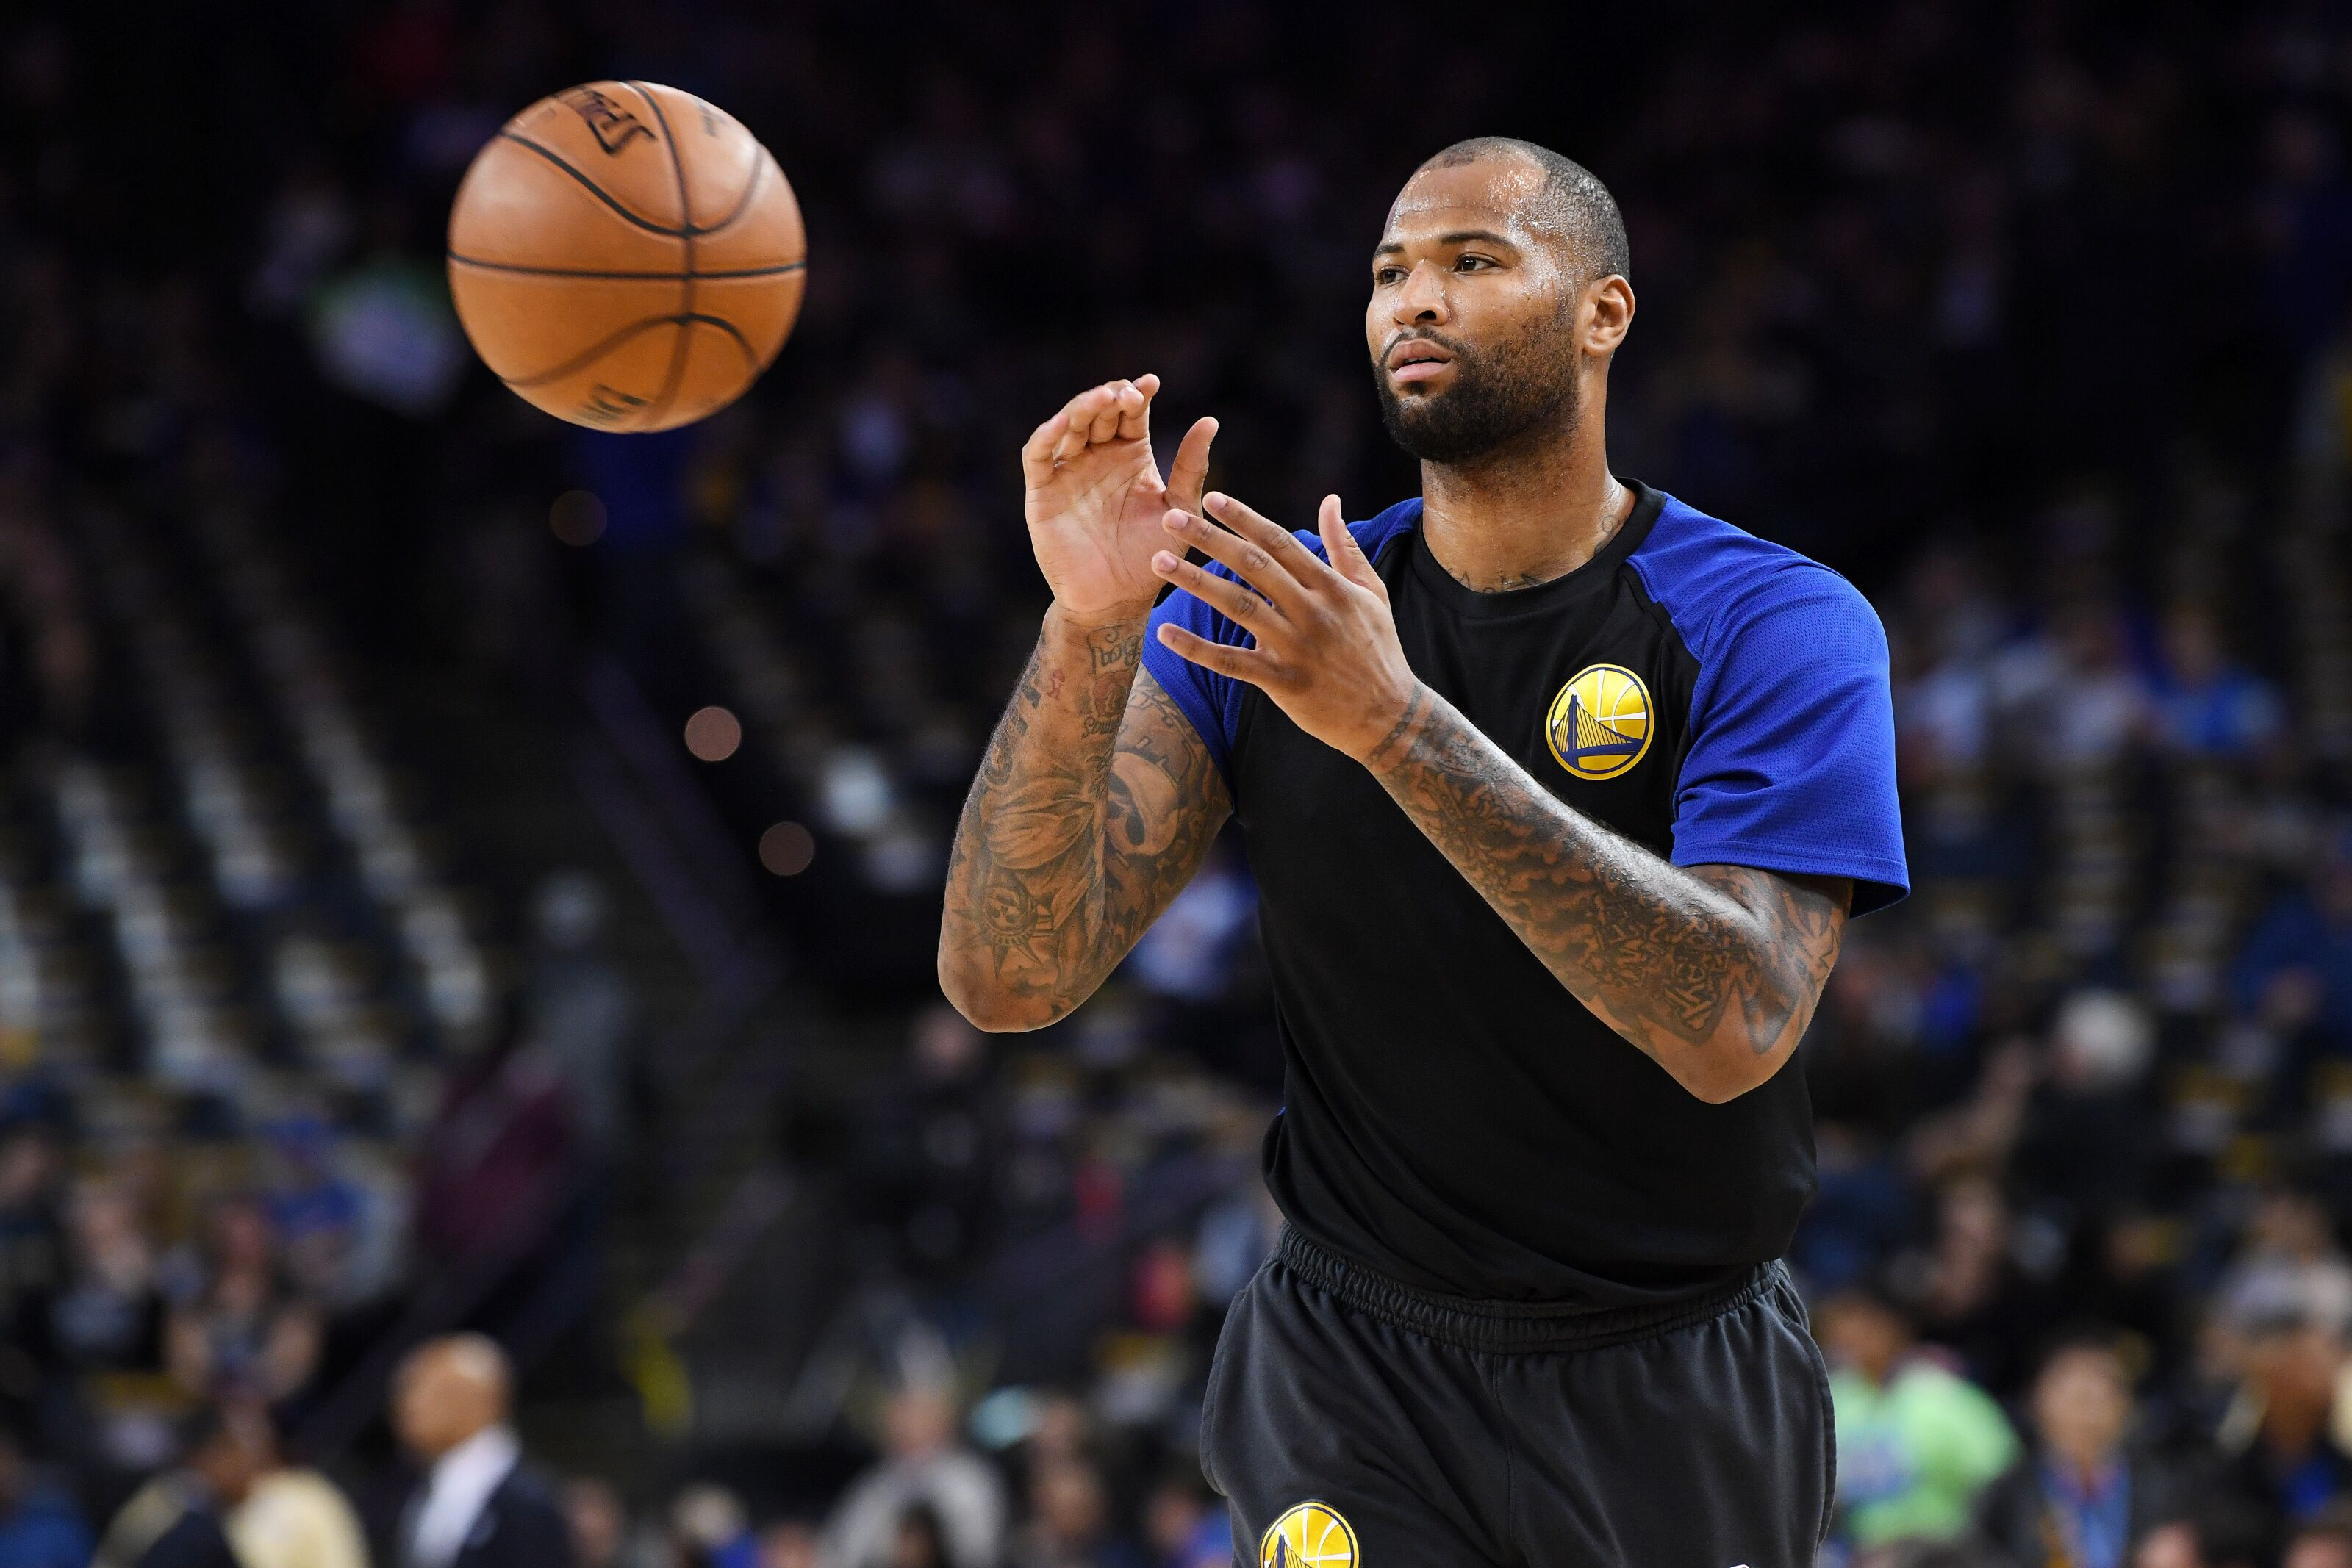 Bracing For Boogie: Inside the state of the Warriors before DeMarcus Cousins' debut